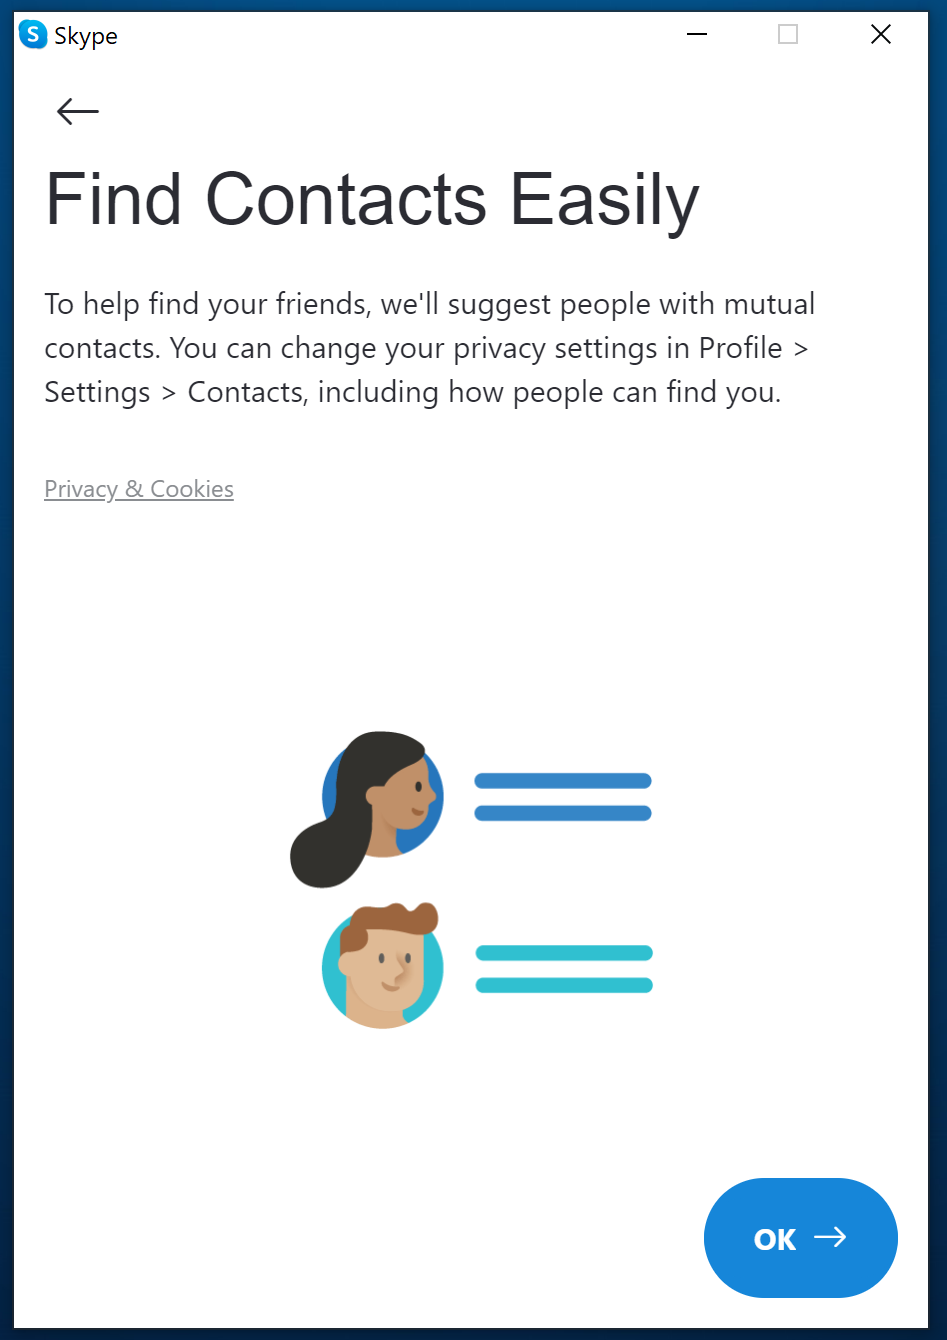 Find contacts - Skype